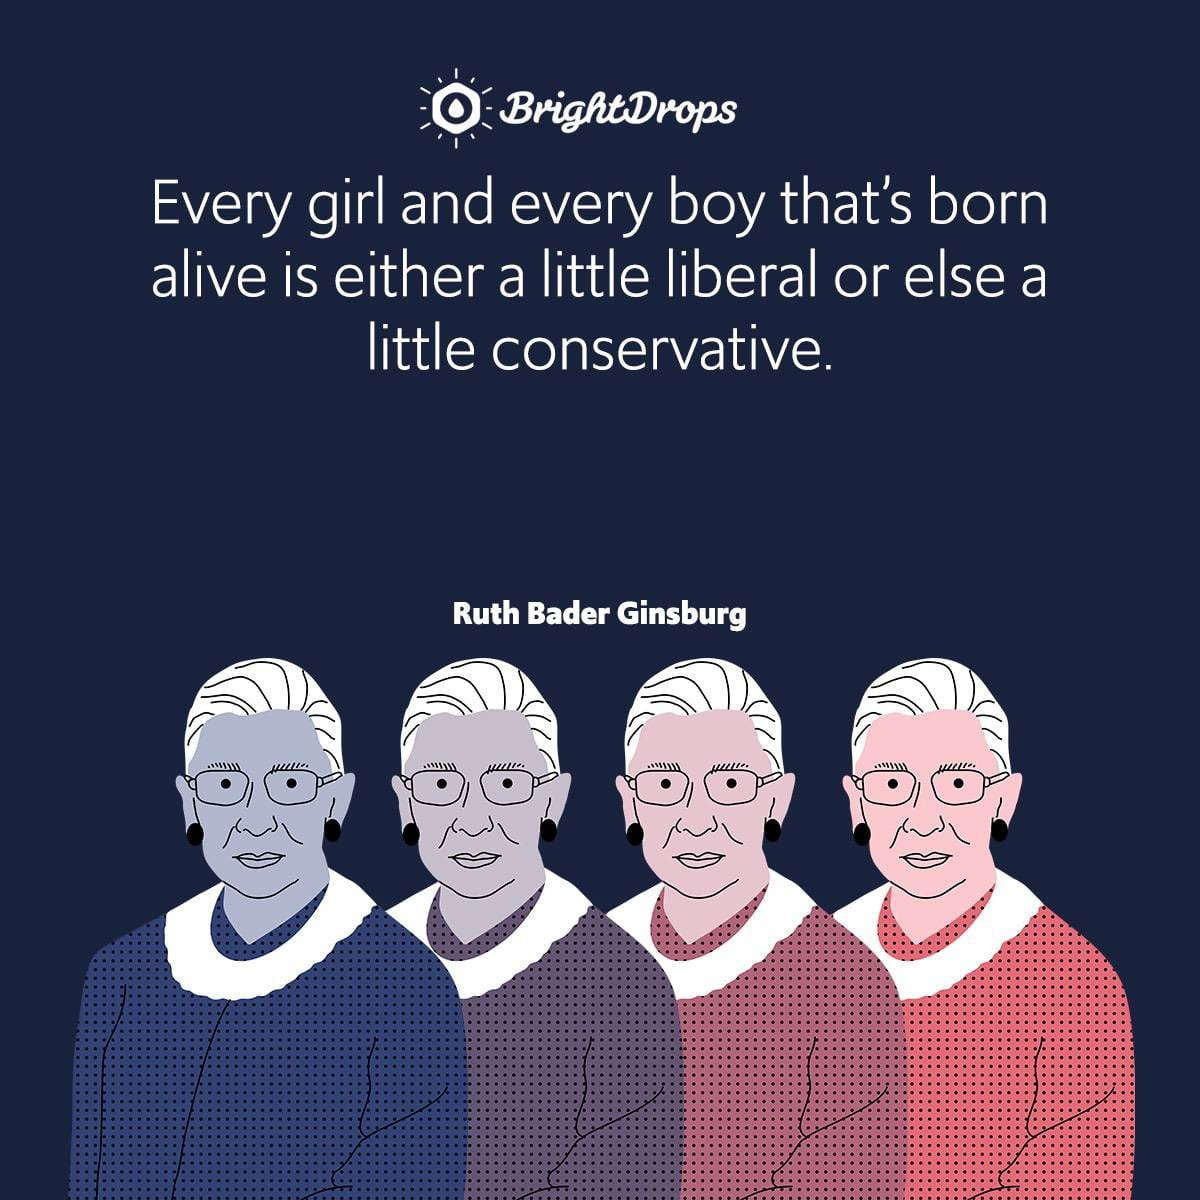 Every girl and every boy that's born alive is either a little liberal or else a little conservative.